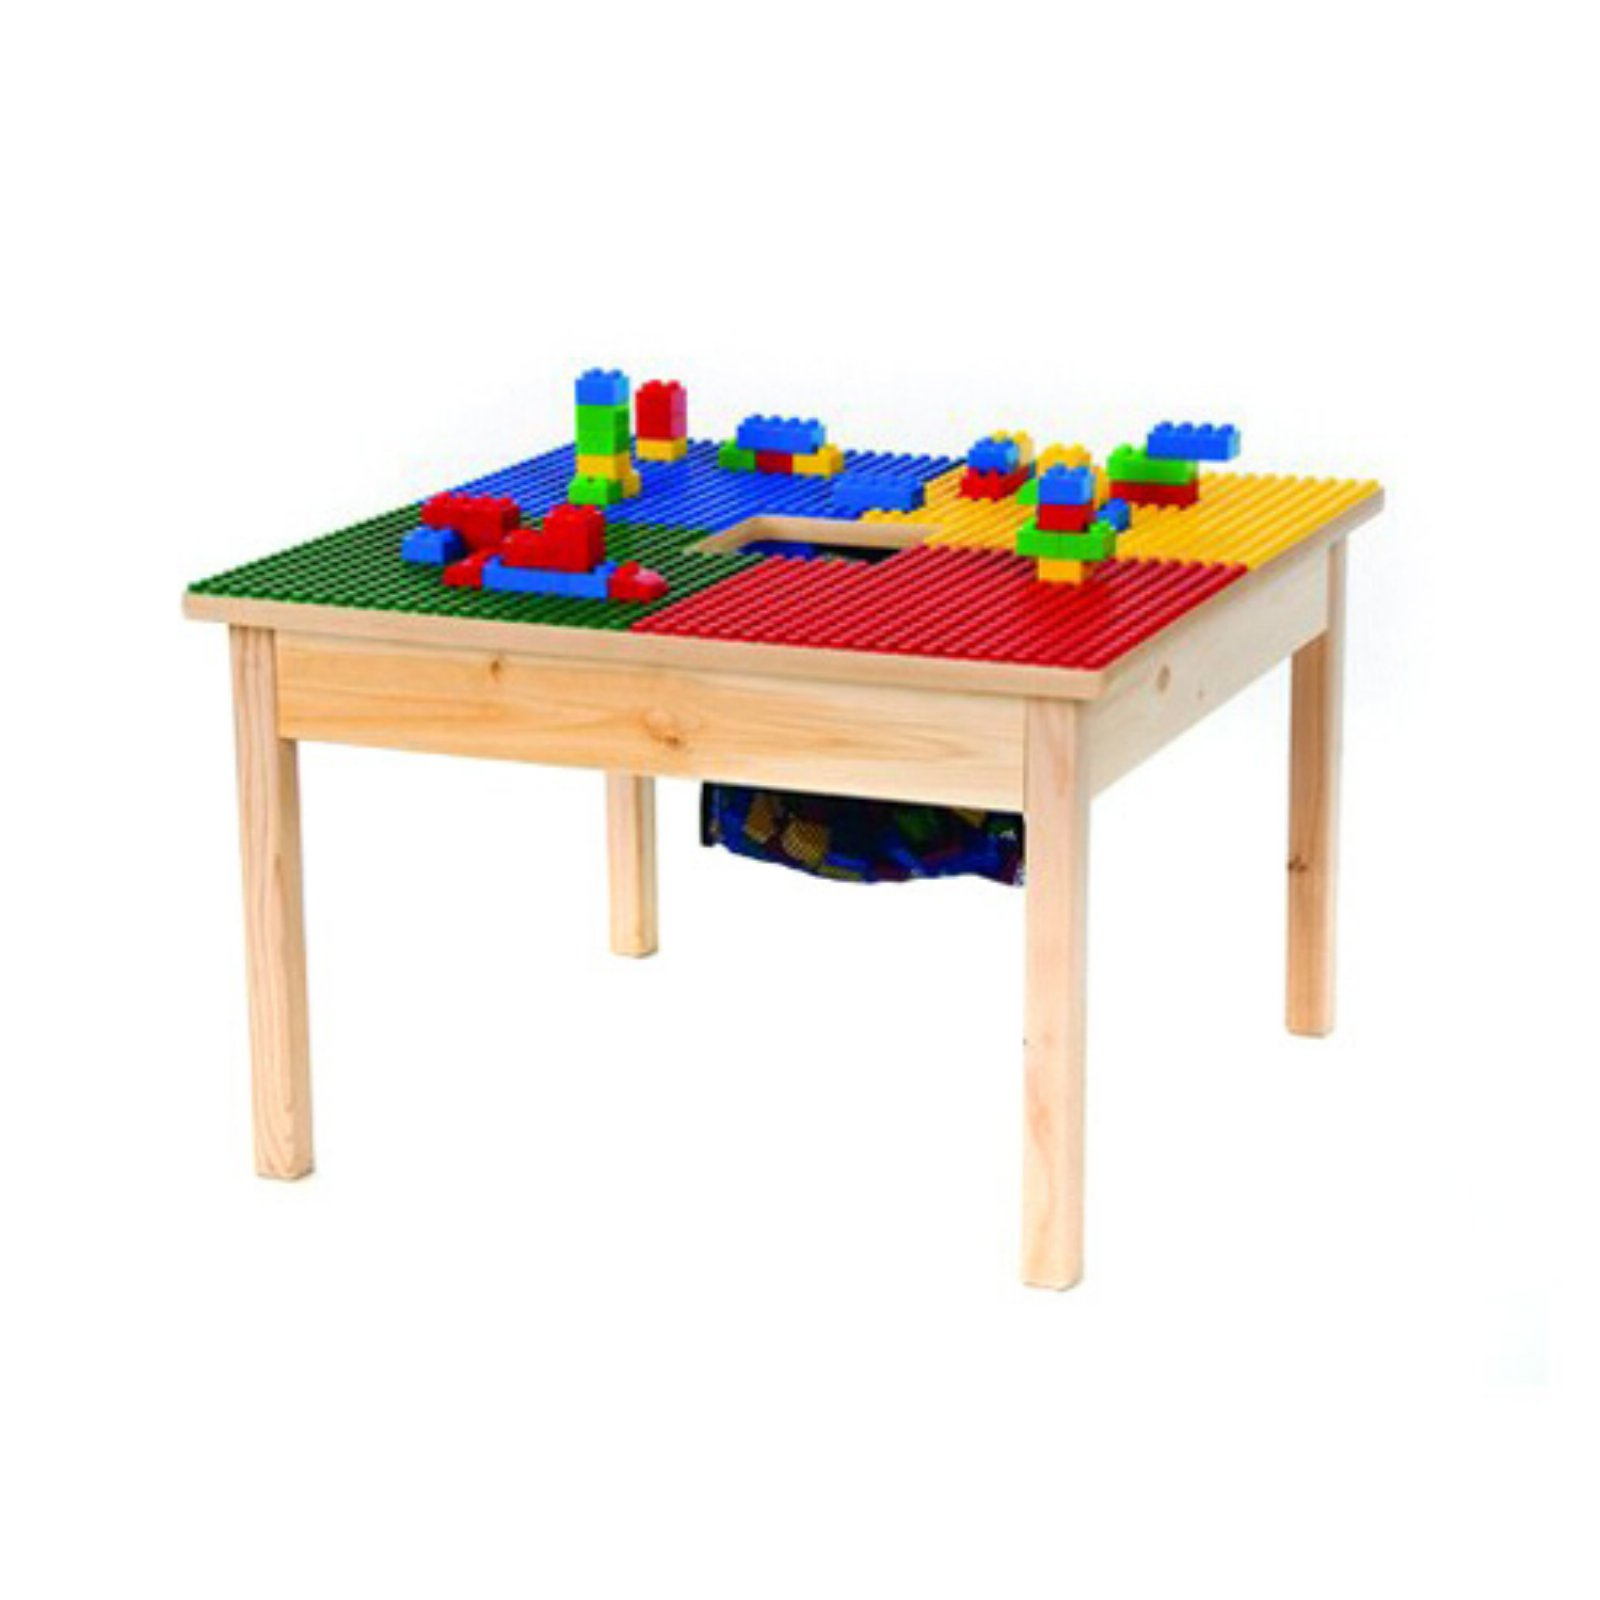 Synergy Fun Builder 27 x 27 in. Building Block Table